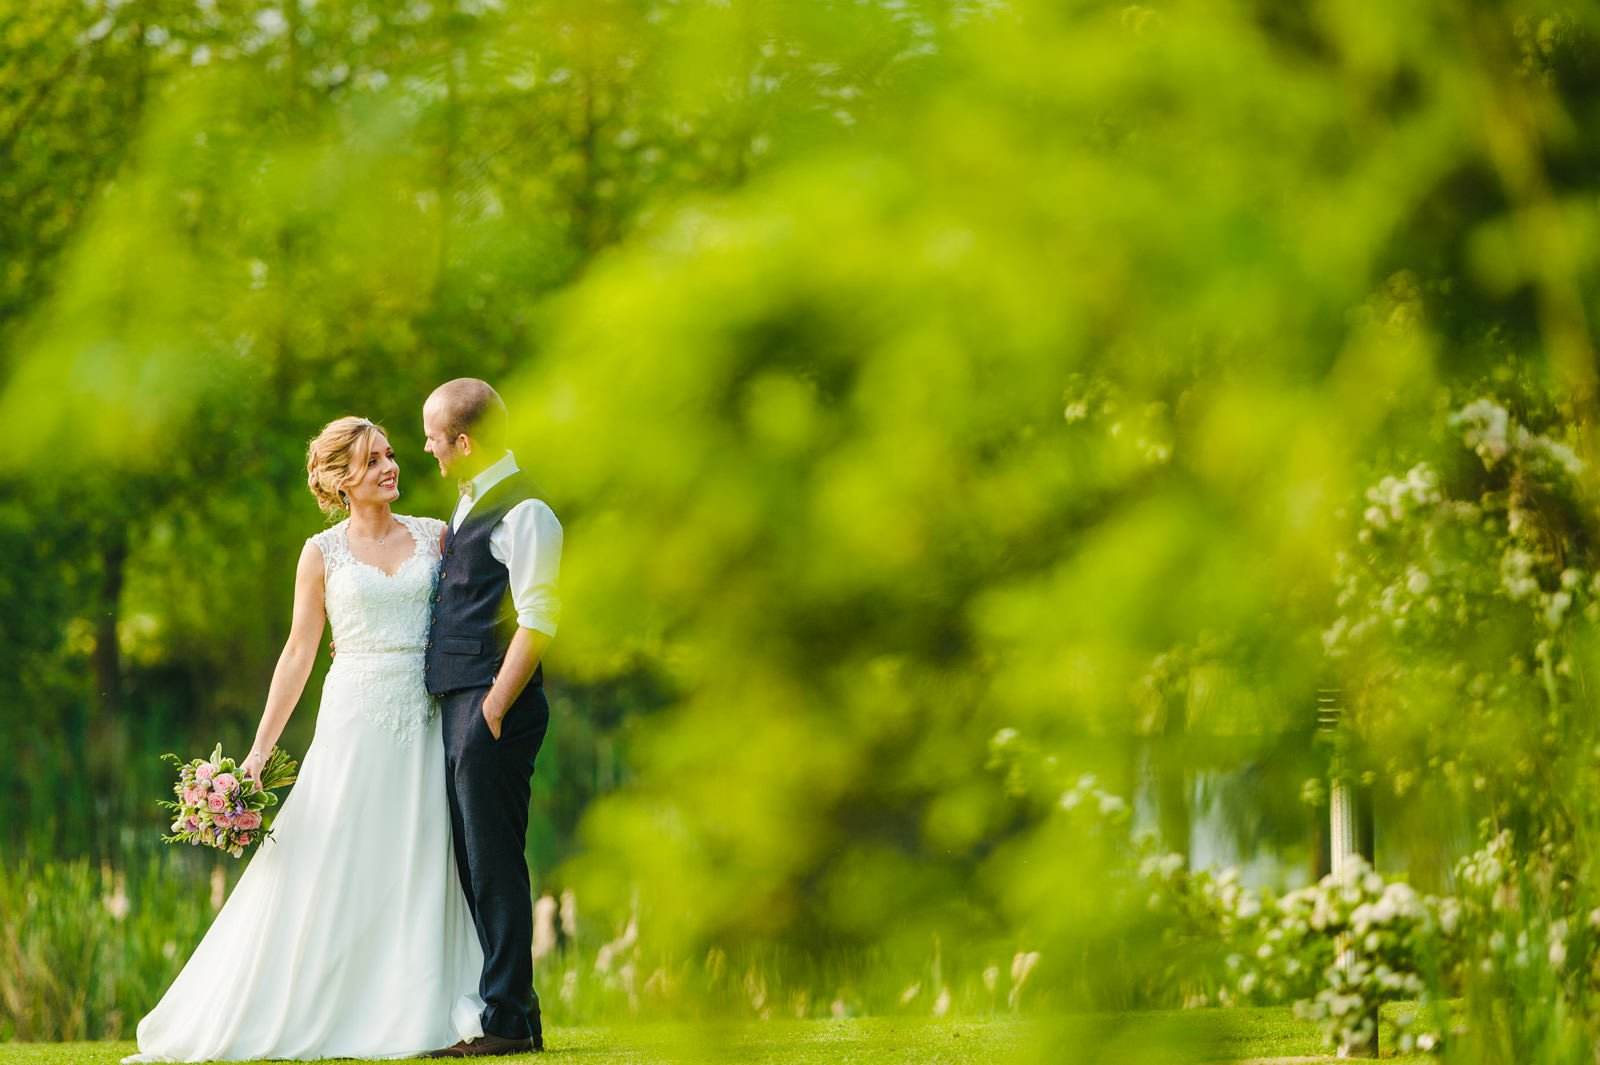 Millers Of Netley wedding, Dorrington, Shrewsbury | Emma + Ben 84